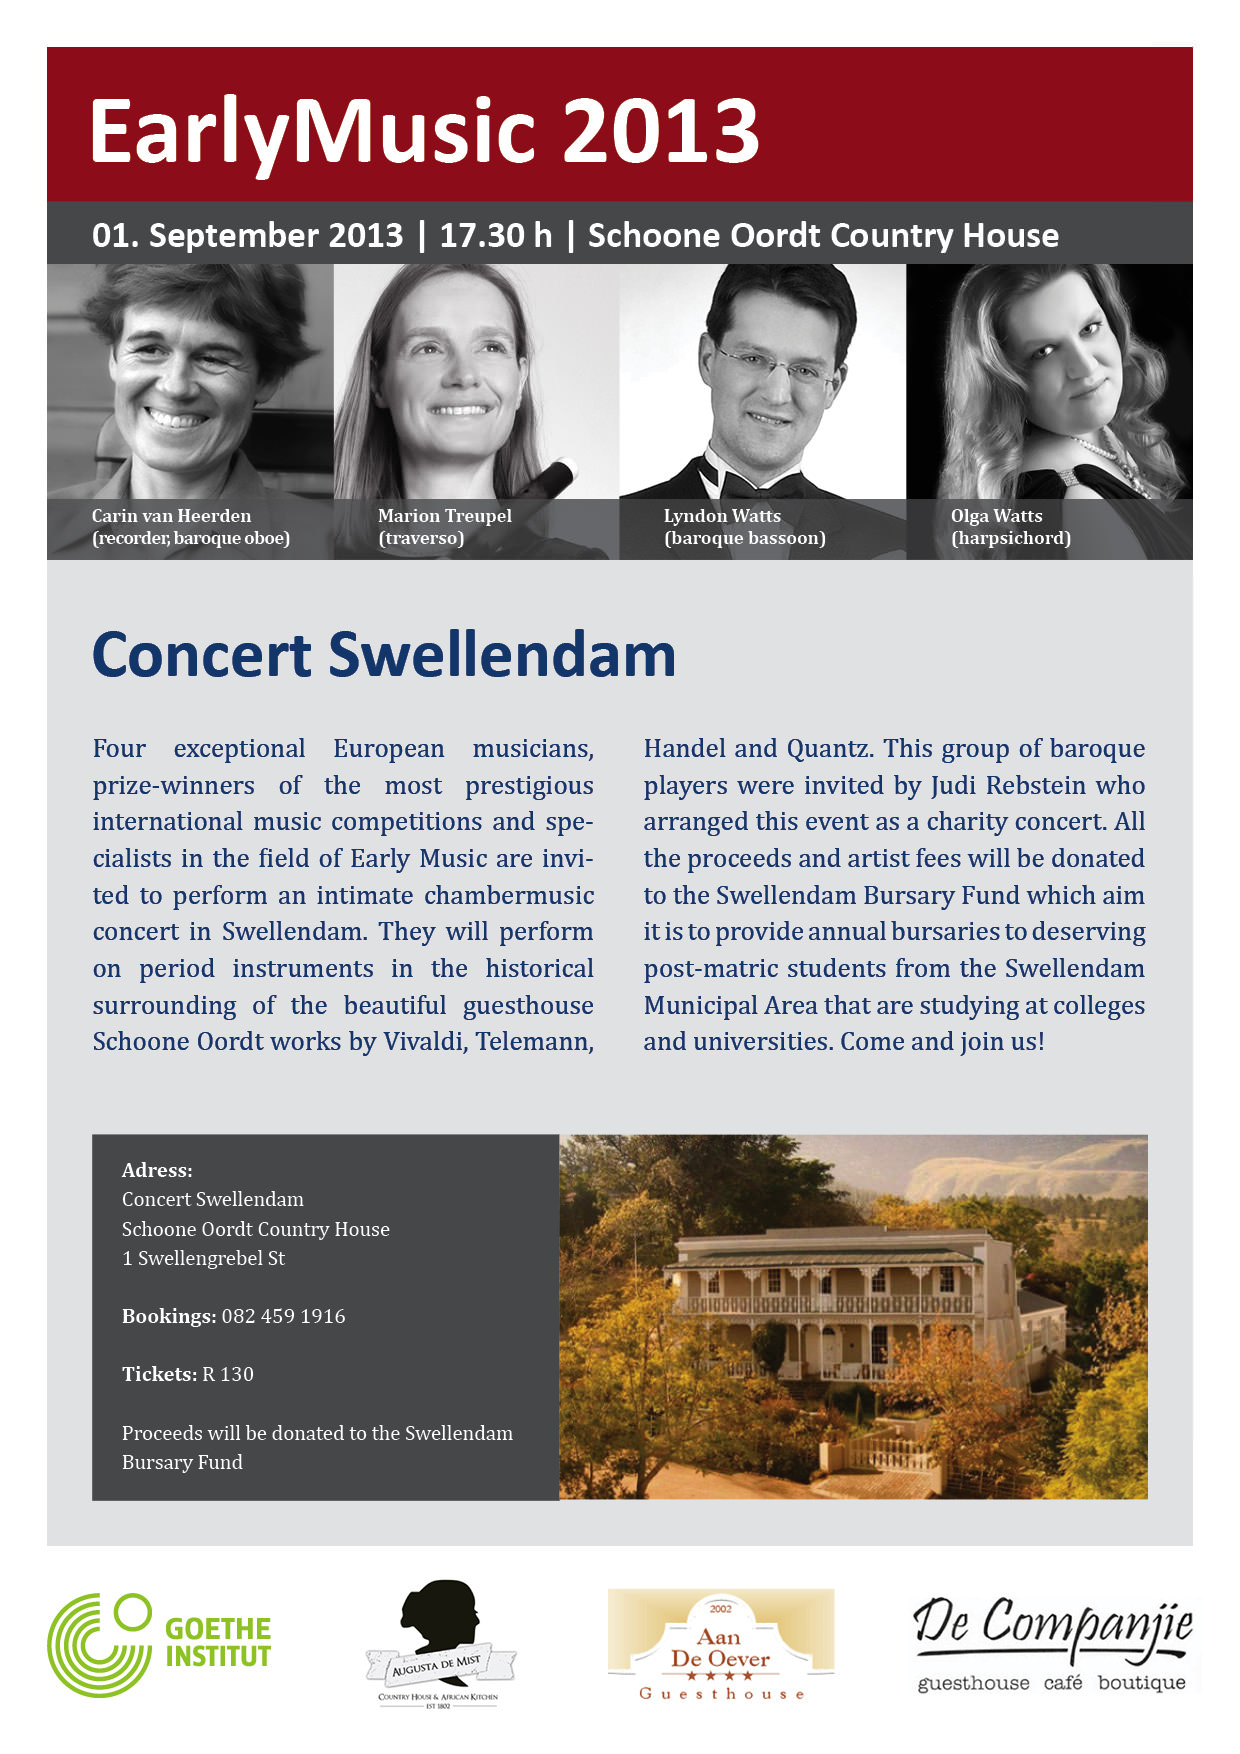 Swellendam House Concert at Schoone Oordt Country Hotel